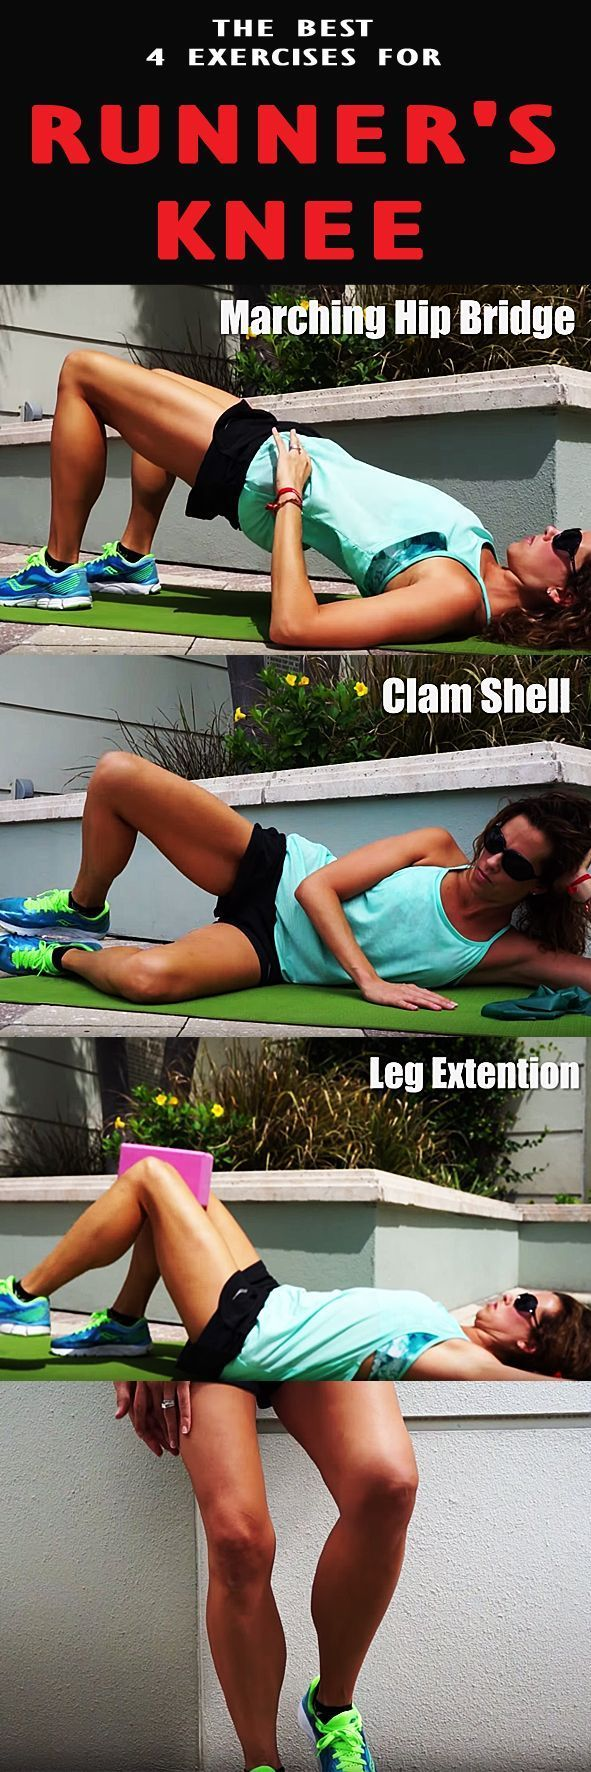 The best 4 exercises for RUNNER'S KNEE. exercises are great for pre-hab and re-hab by strengthening many common weakness of runners.